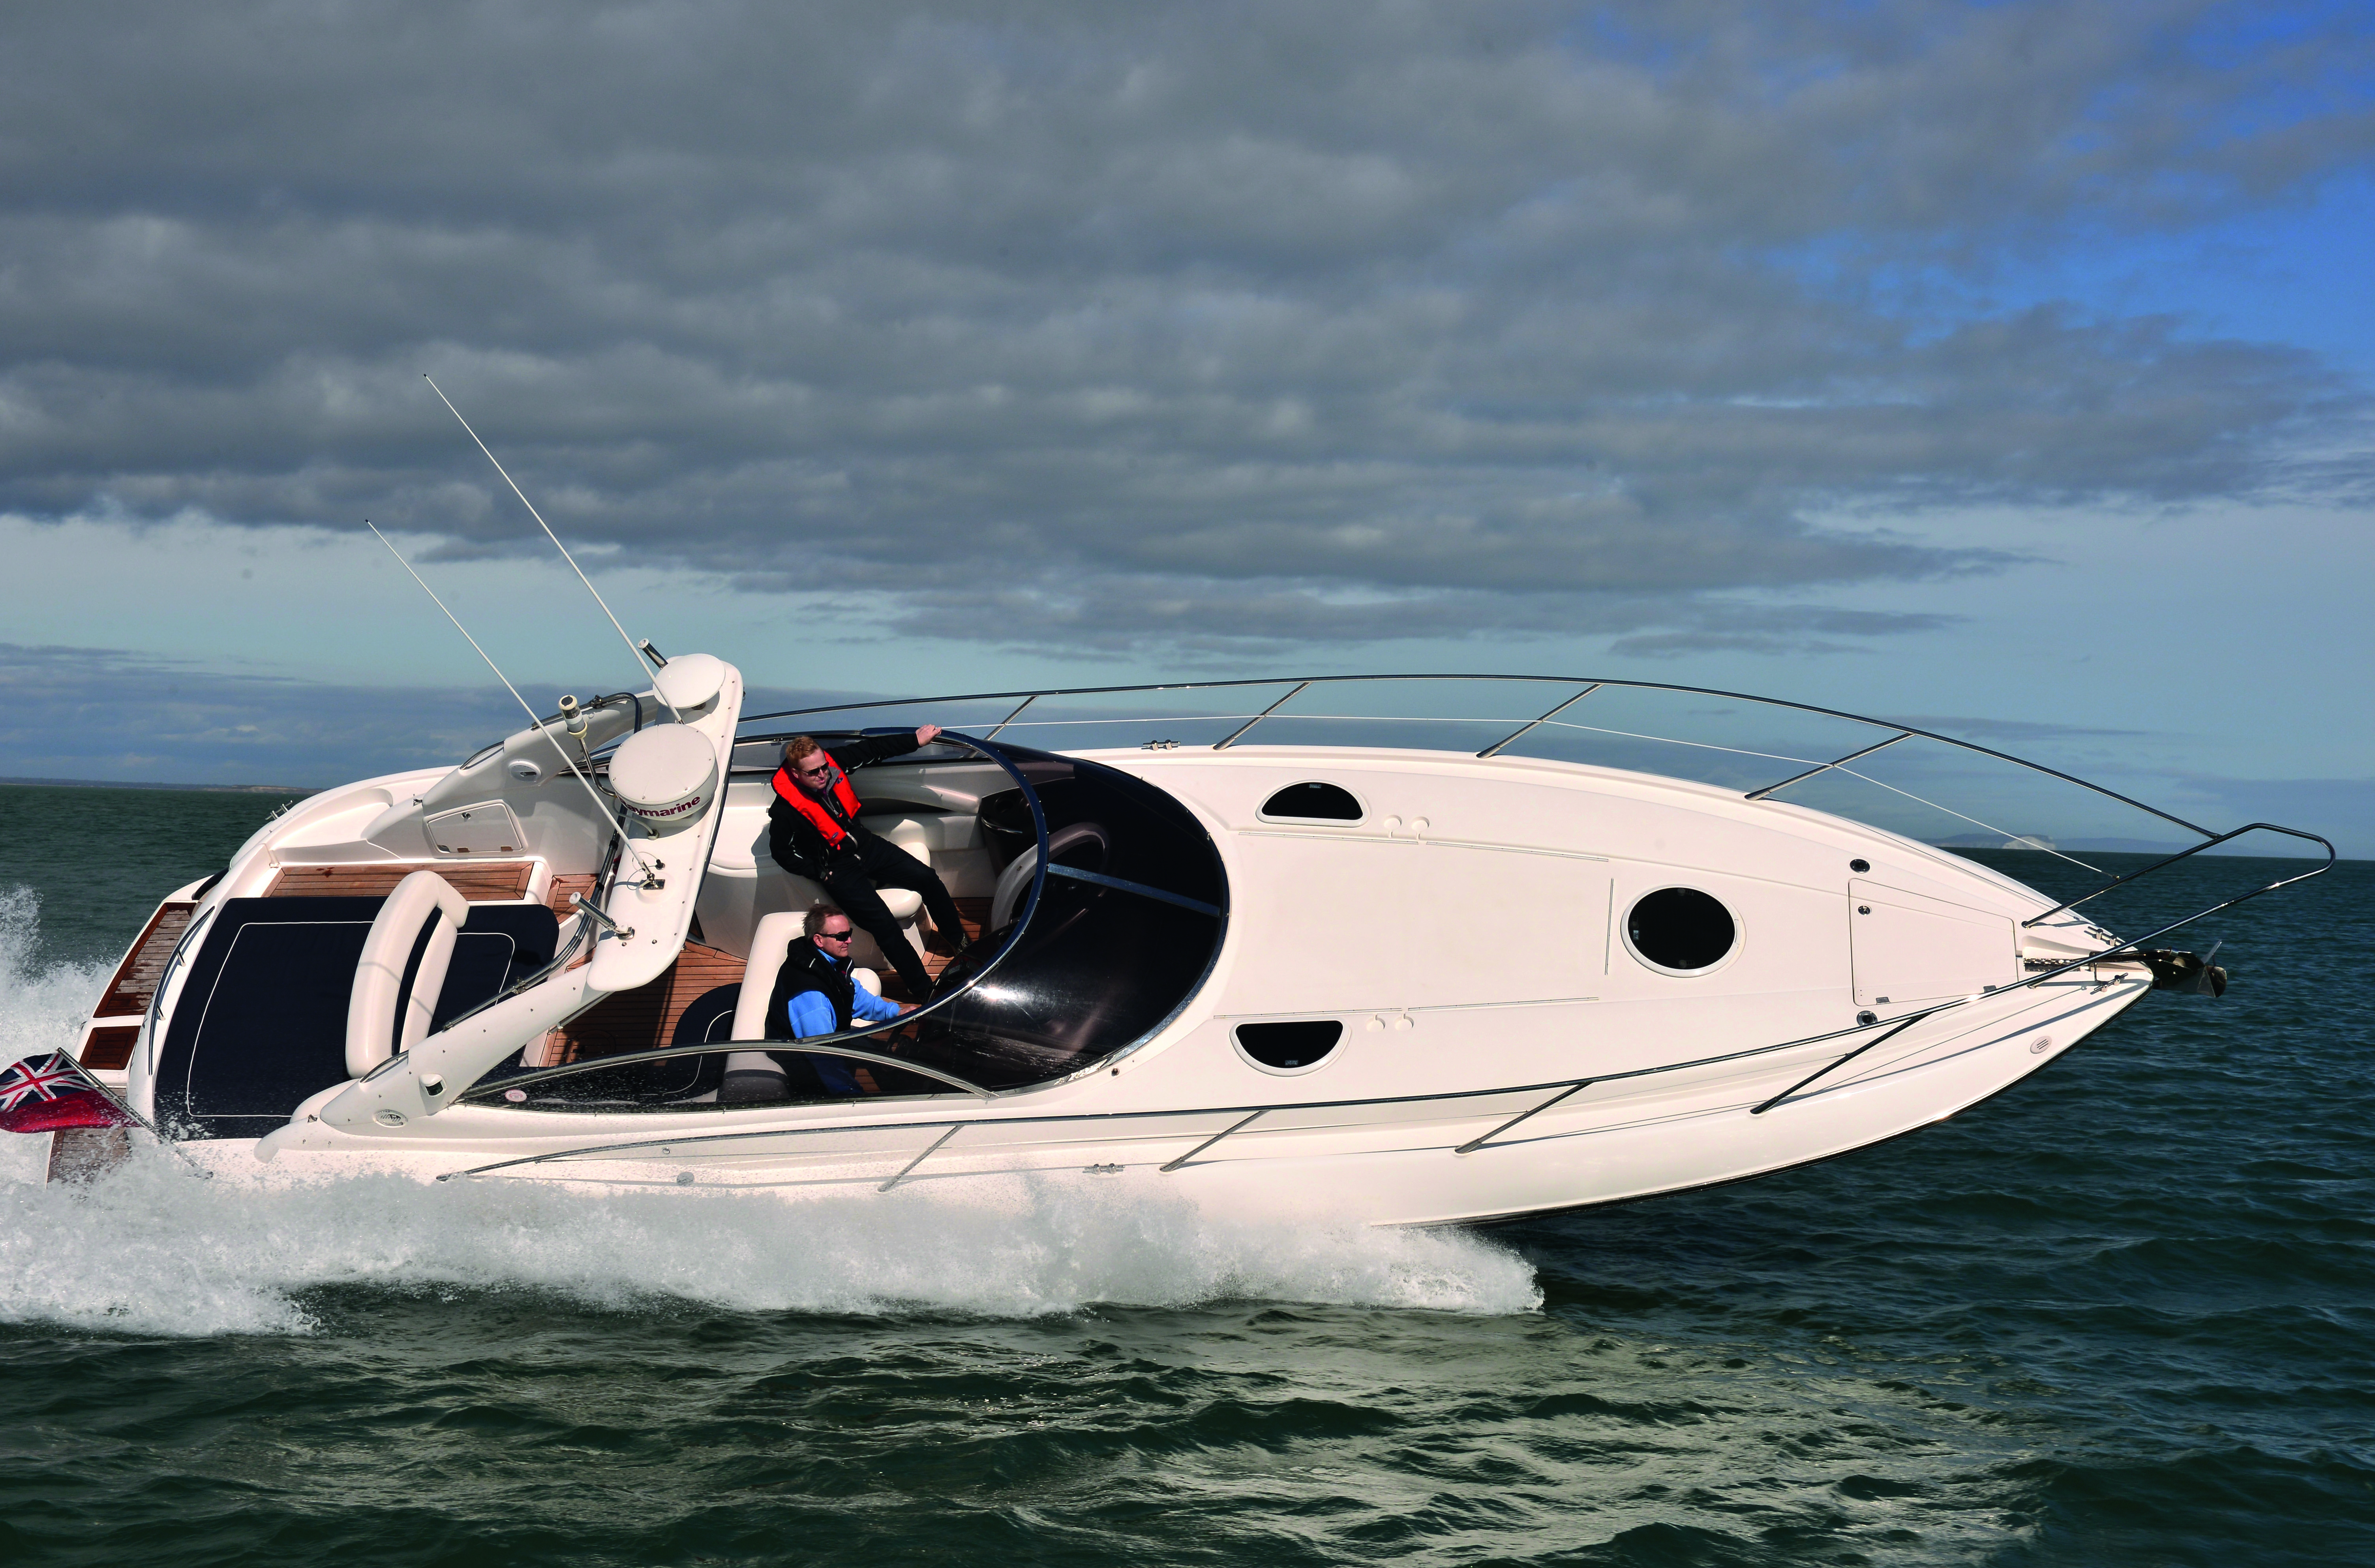 Sea Hawk Boats >> Video: Sunseeker Superhawk 34 used boat test - Motor Boat & Yachting